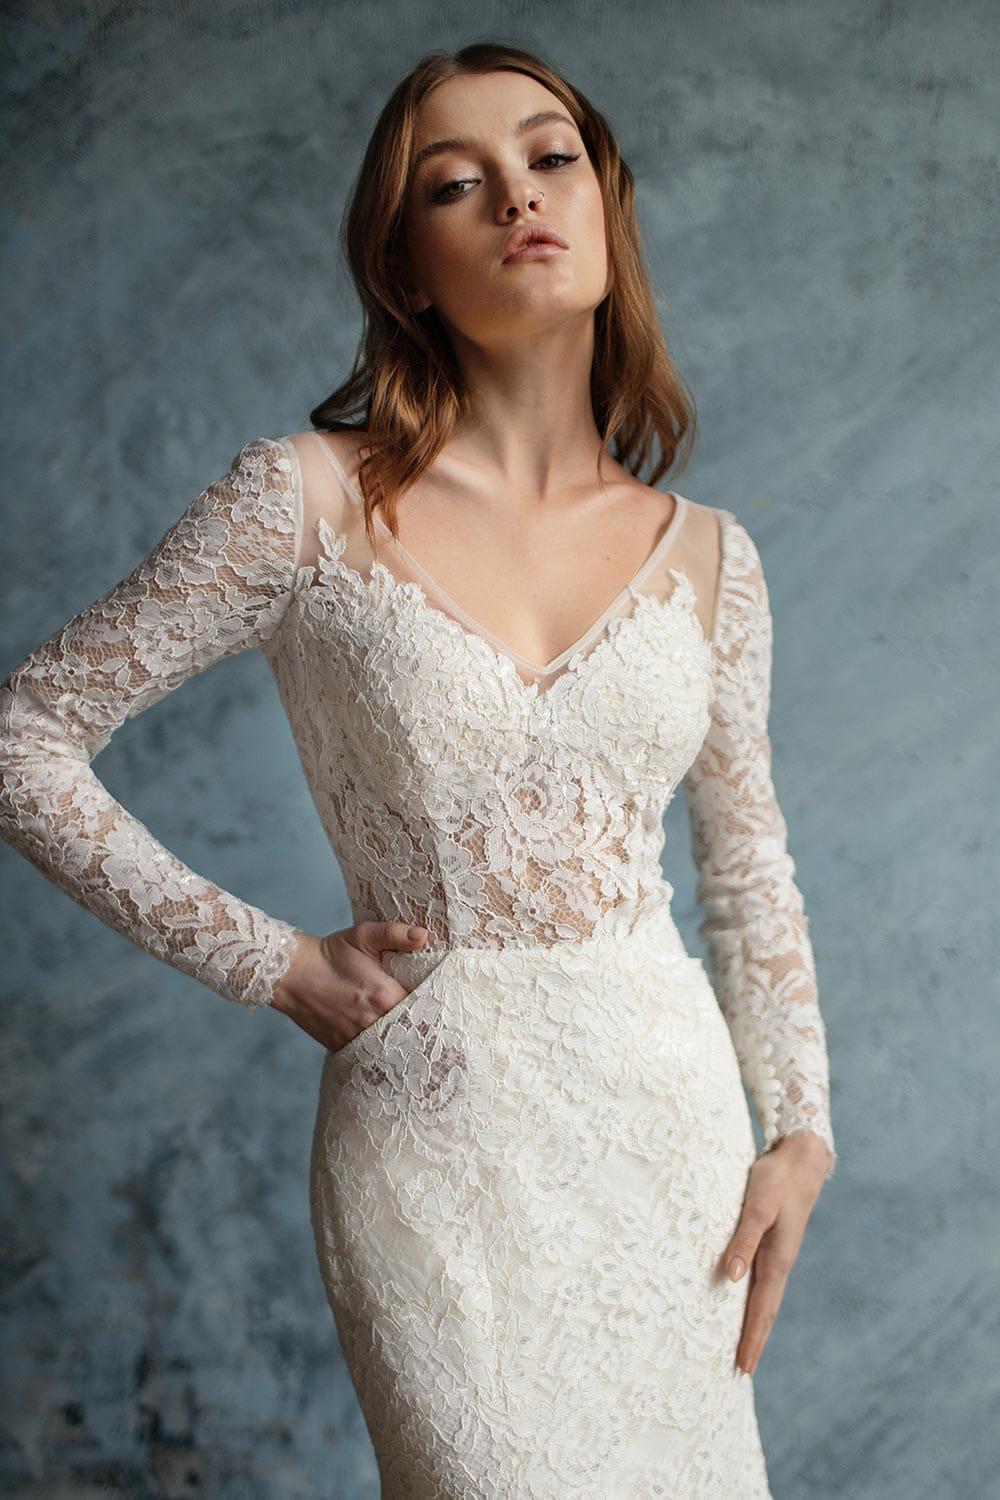 boho wedding dress long sleeve boho wedding dress with sleeves wedding dress shop wimbledon 3